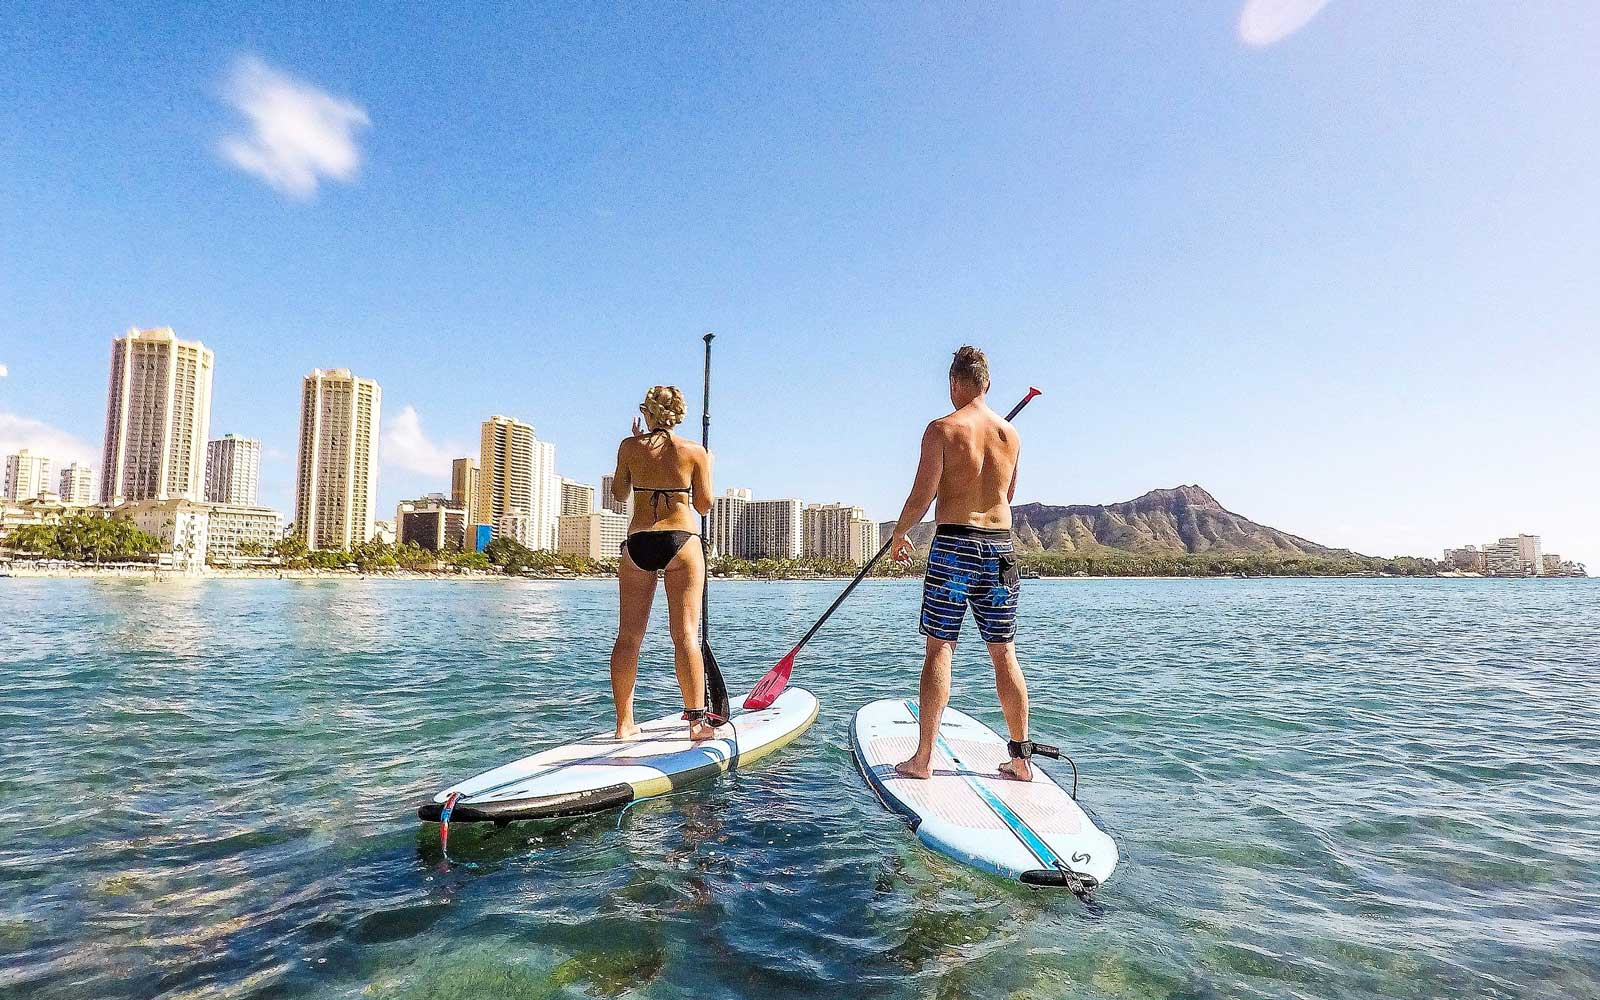 Save 30% off a Three-night Stay at an Boutique Hotel in Waikiki